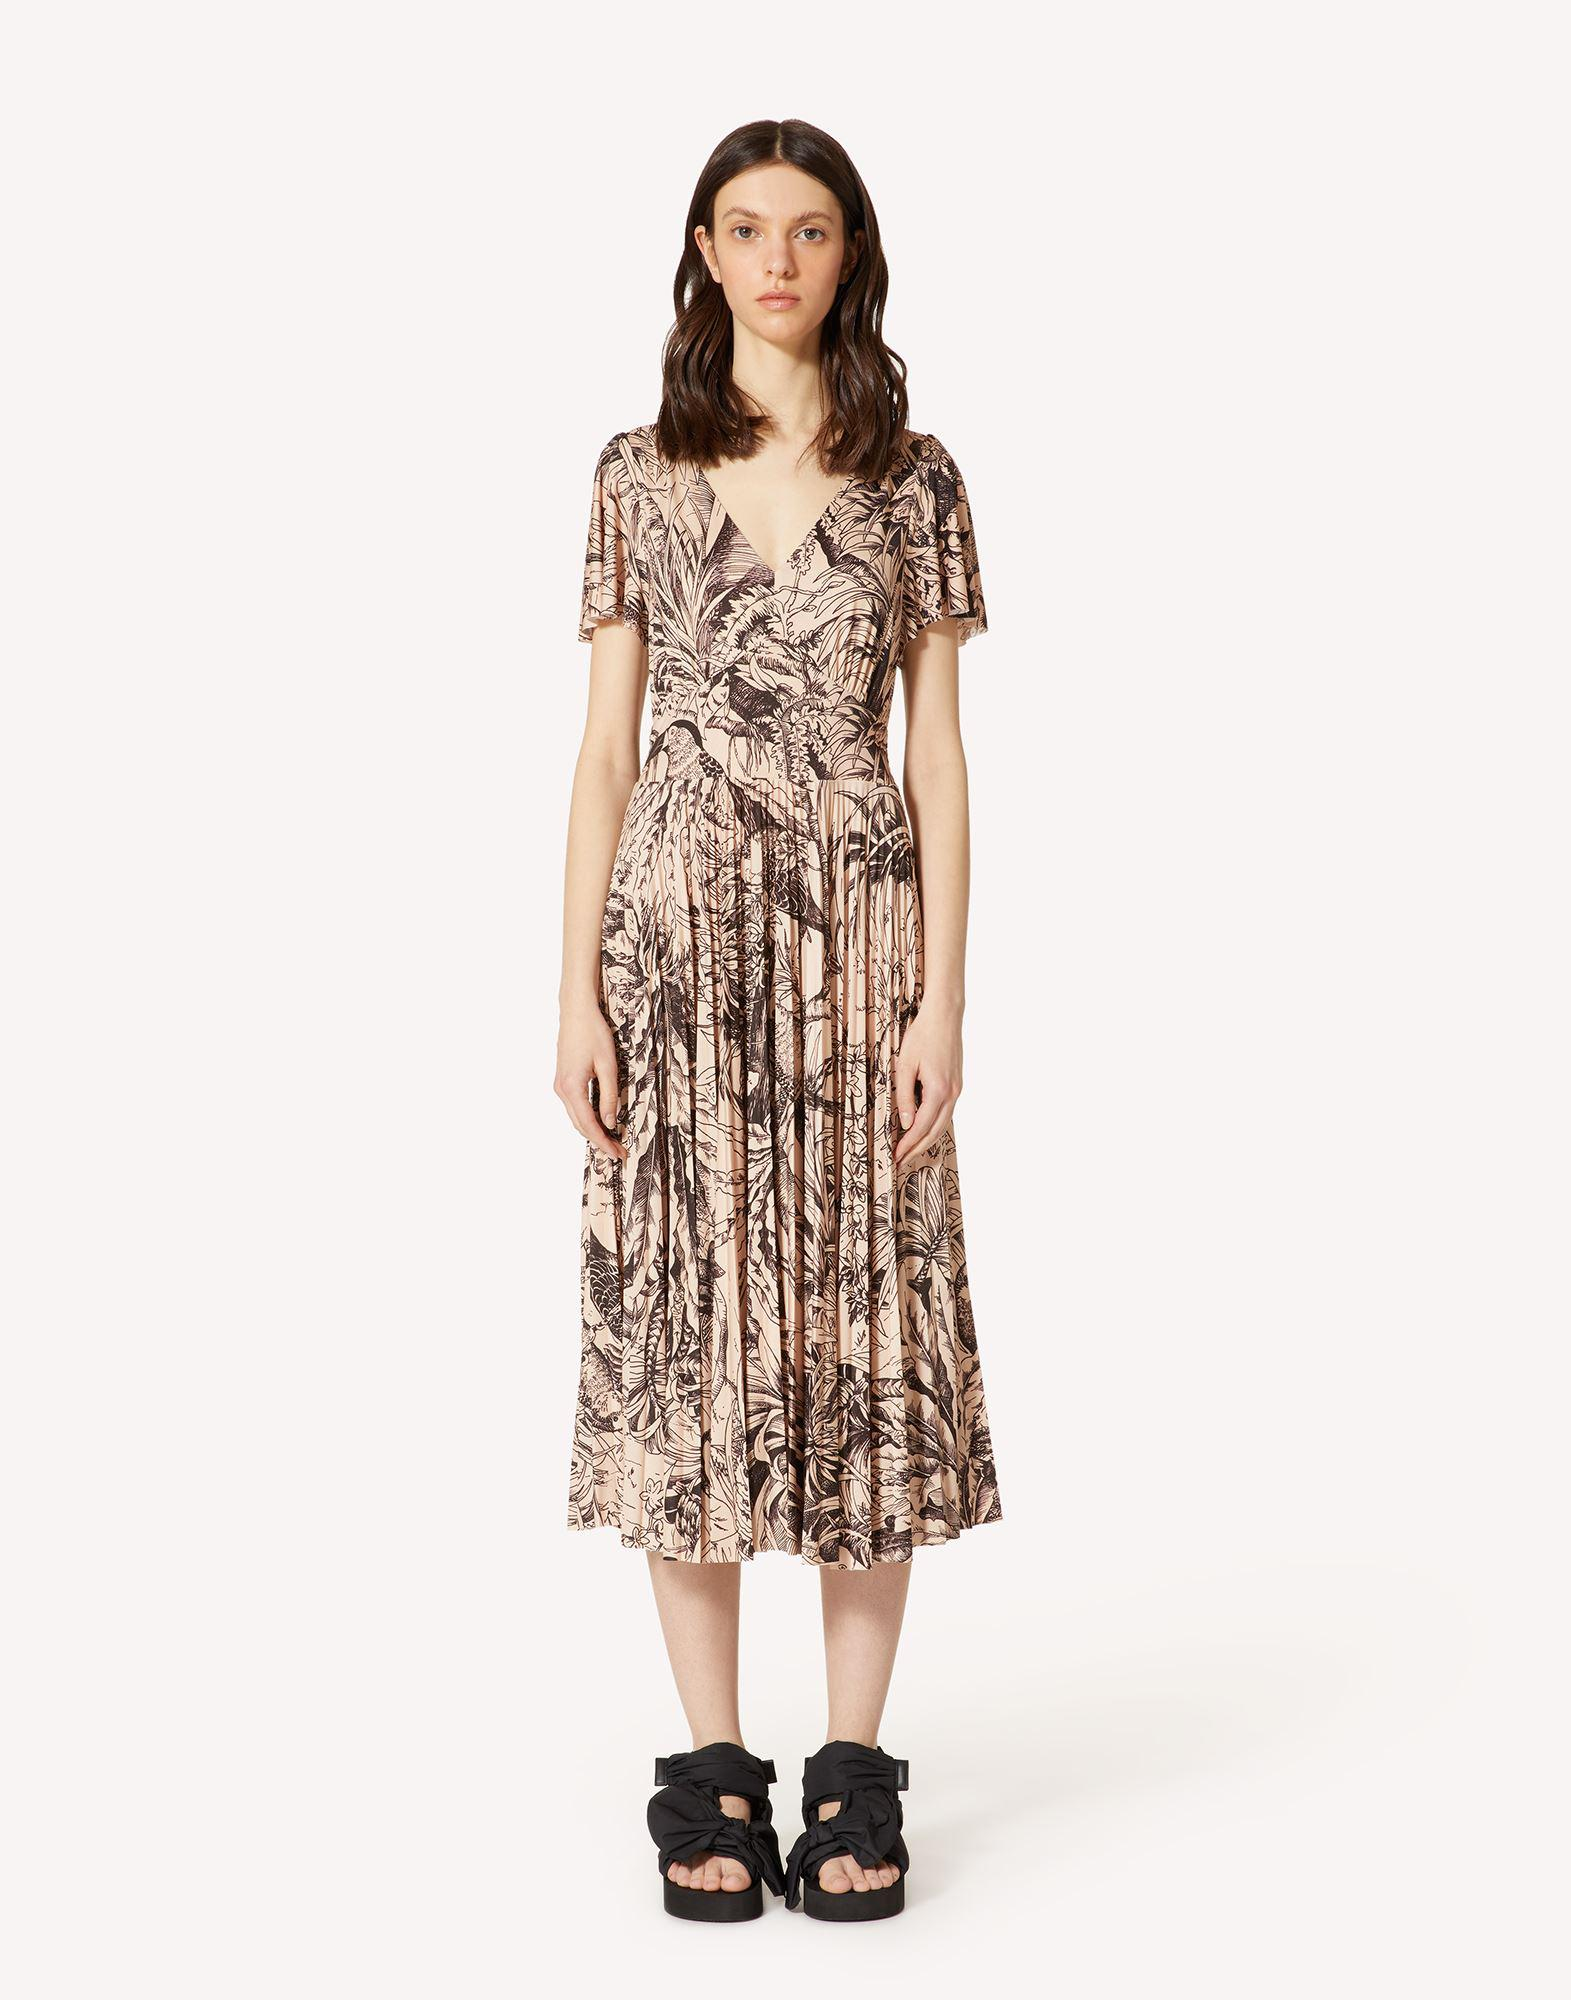 JERSEY DRESS WITH JUNGLE TOILE PRINT